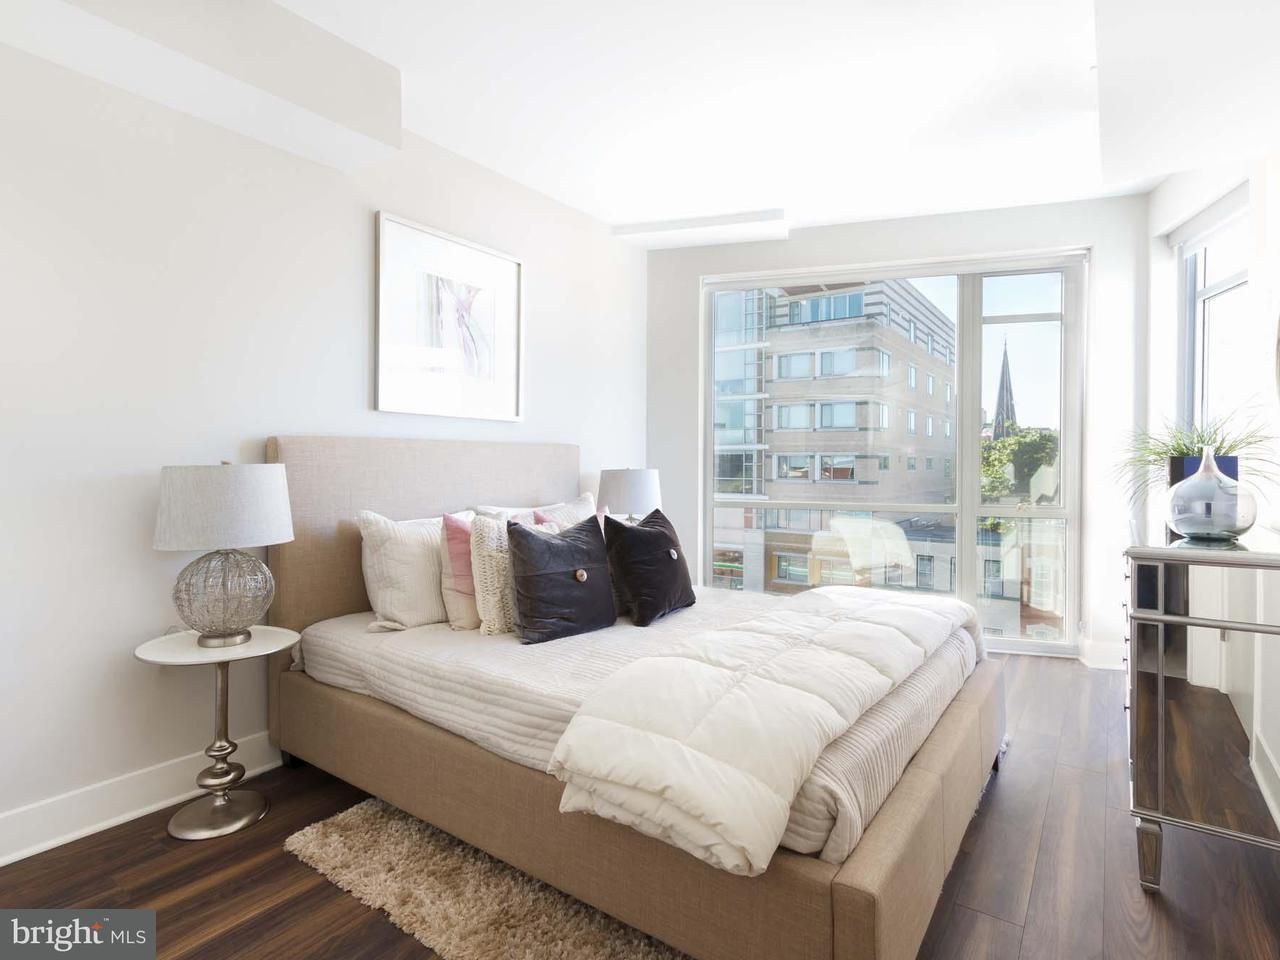 Additional photo for property listing at 1311 13th St Nw #Ph-1 1311 13th St Nw #Ph-1 Washington, コロンビア特別区 20005 アメリカ合衆国